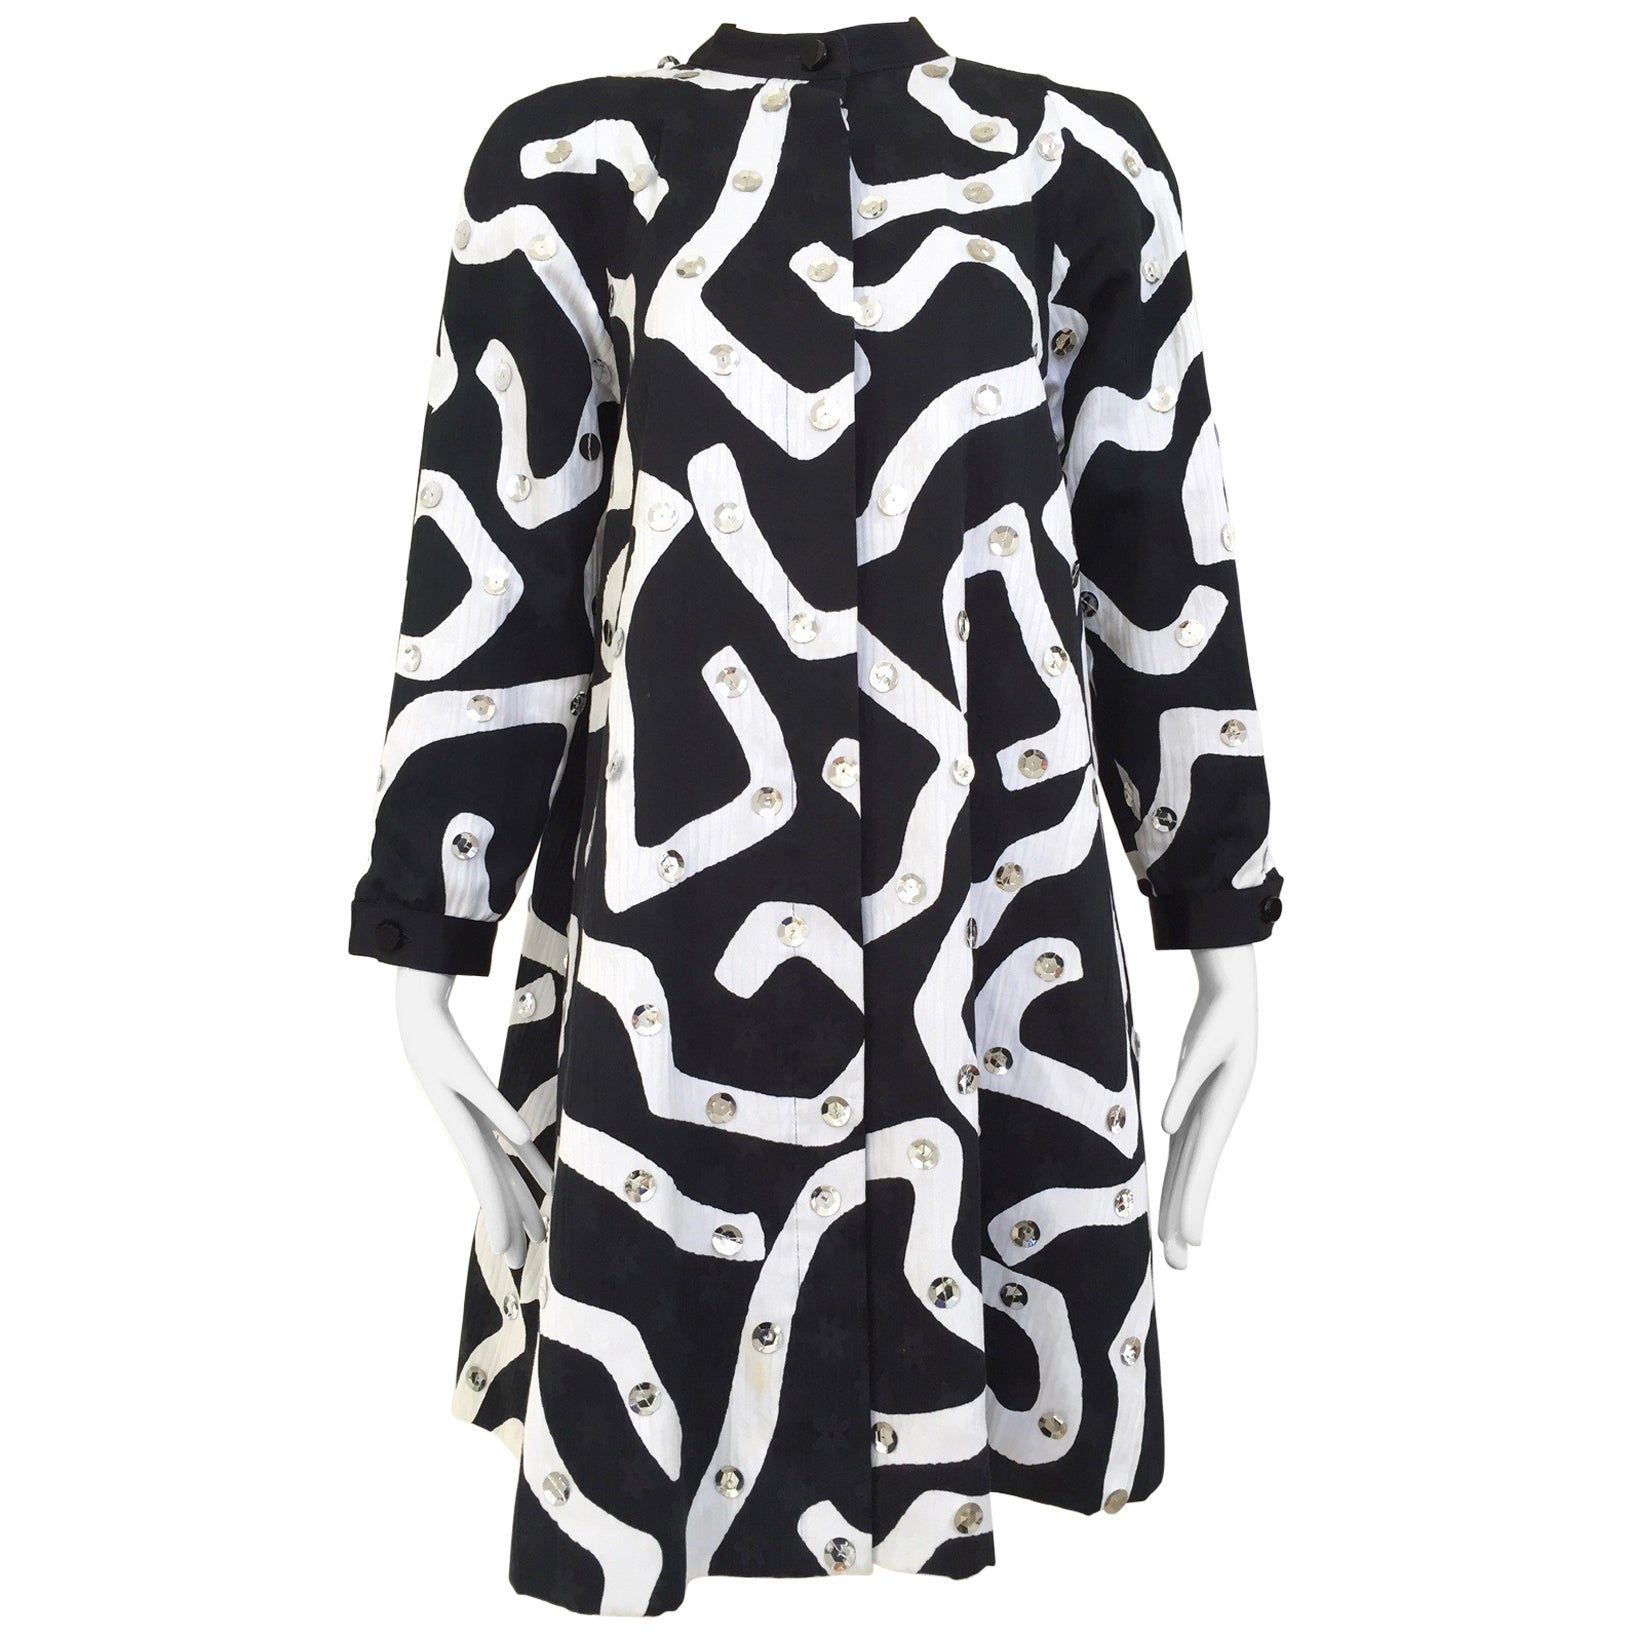 1980s Geoffrey Beene Blaack and White Abstract Print Cotton Dress